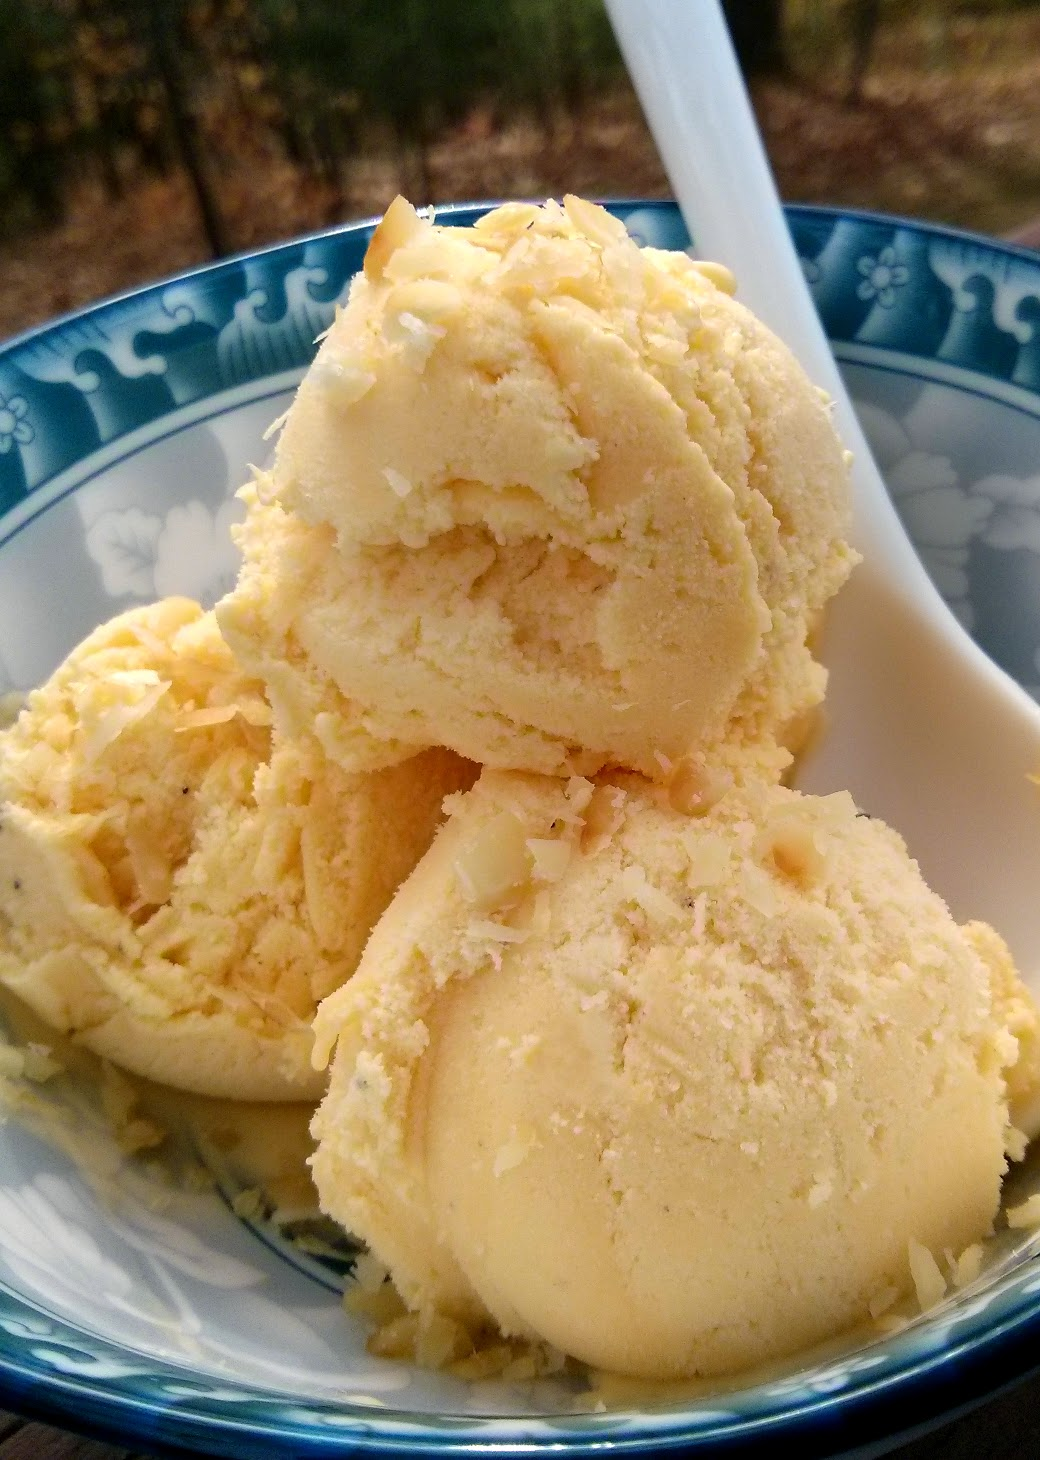 Thanh's Kitchen: Home-Made Passion Fruit Ice Cream (makes ...